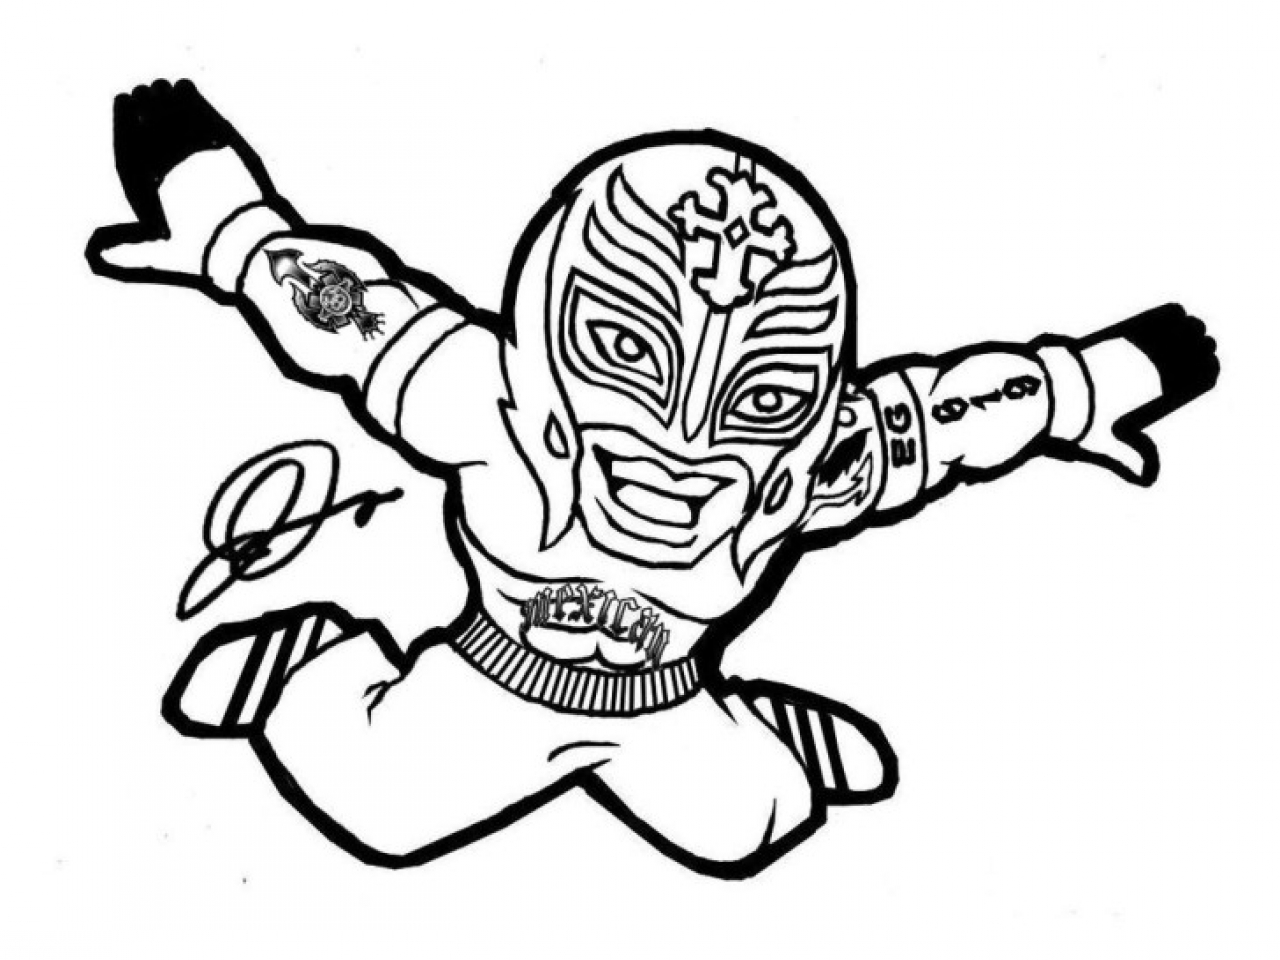 1280x960 Coloring Pages Surprising Coloring Pages Of Wwe Wrestling Cake